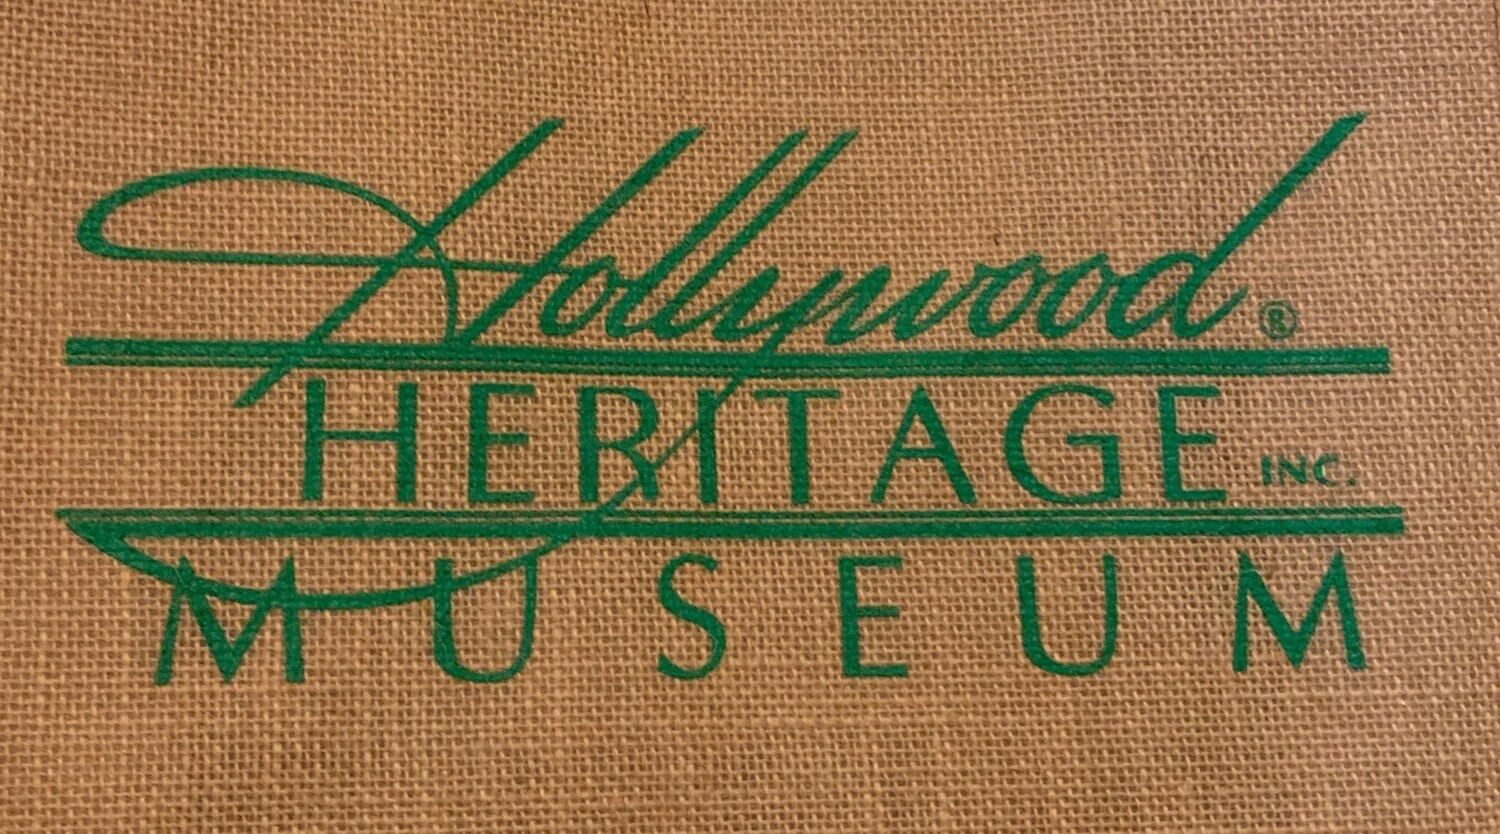 Hollywood Heritage Museum Store Gift card